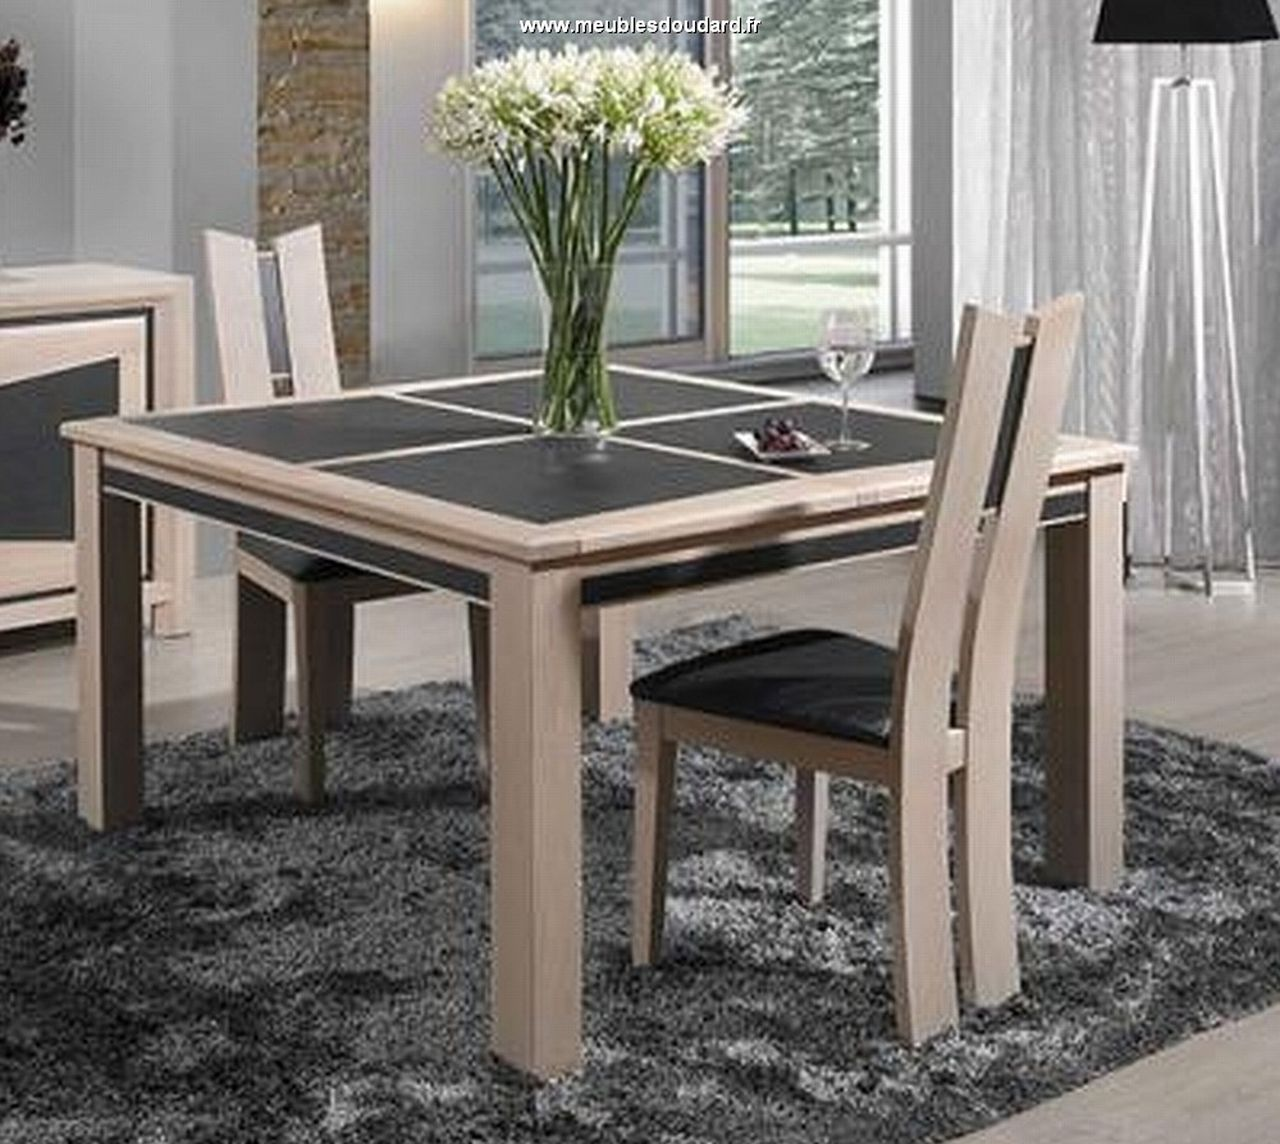 Table Carree Grise Avec Allonges 28 Images Tables En